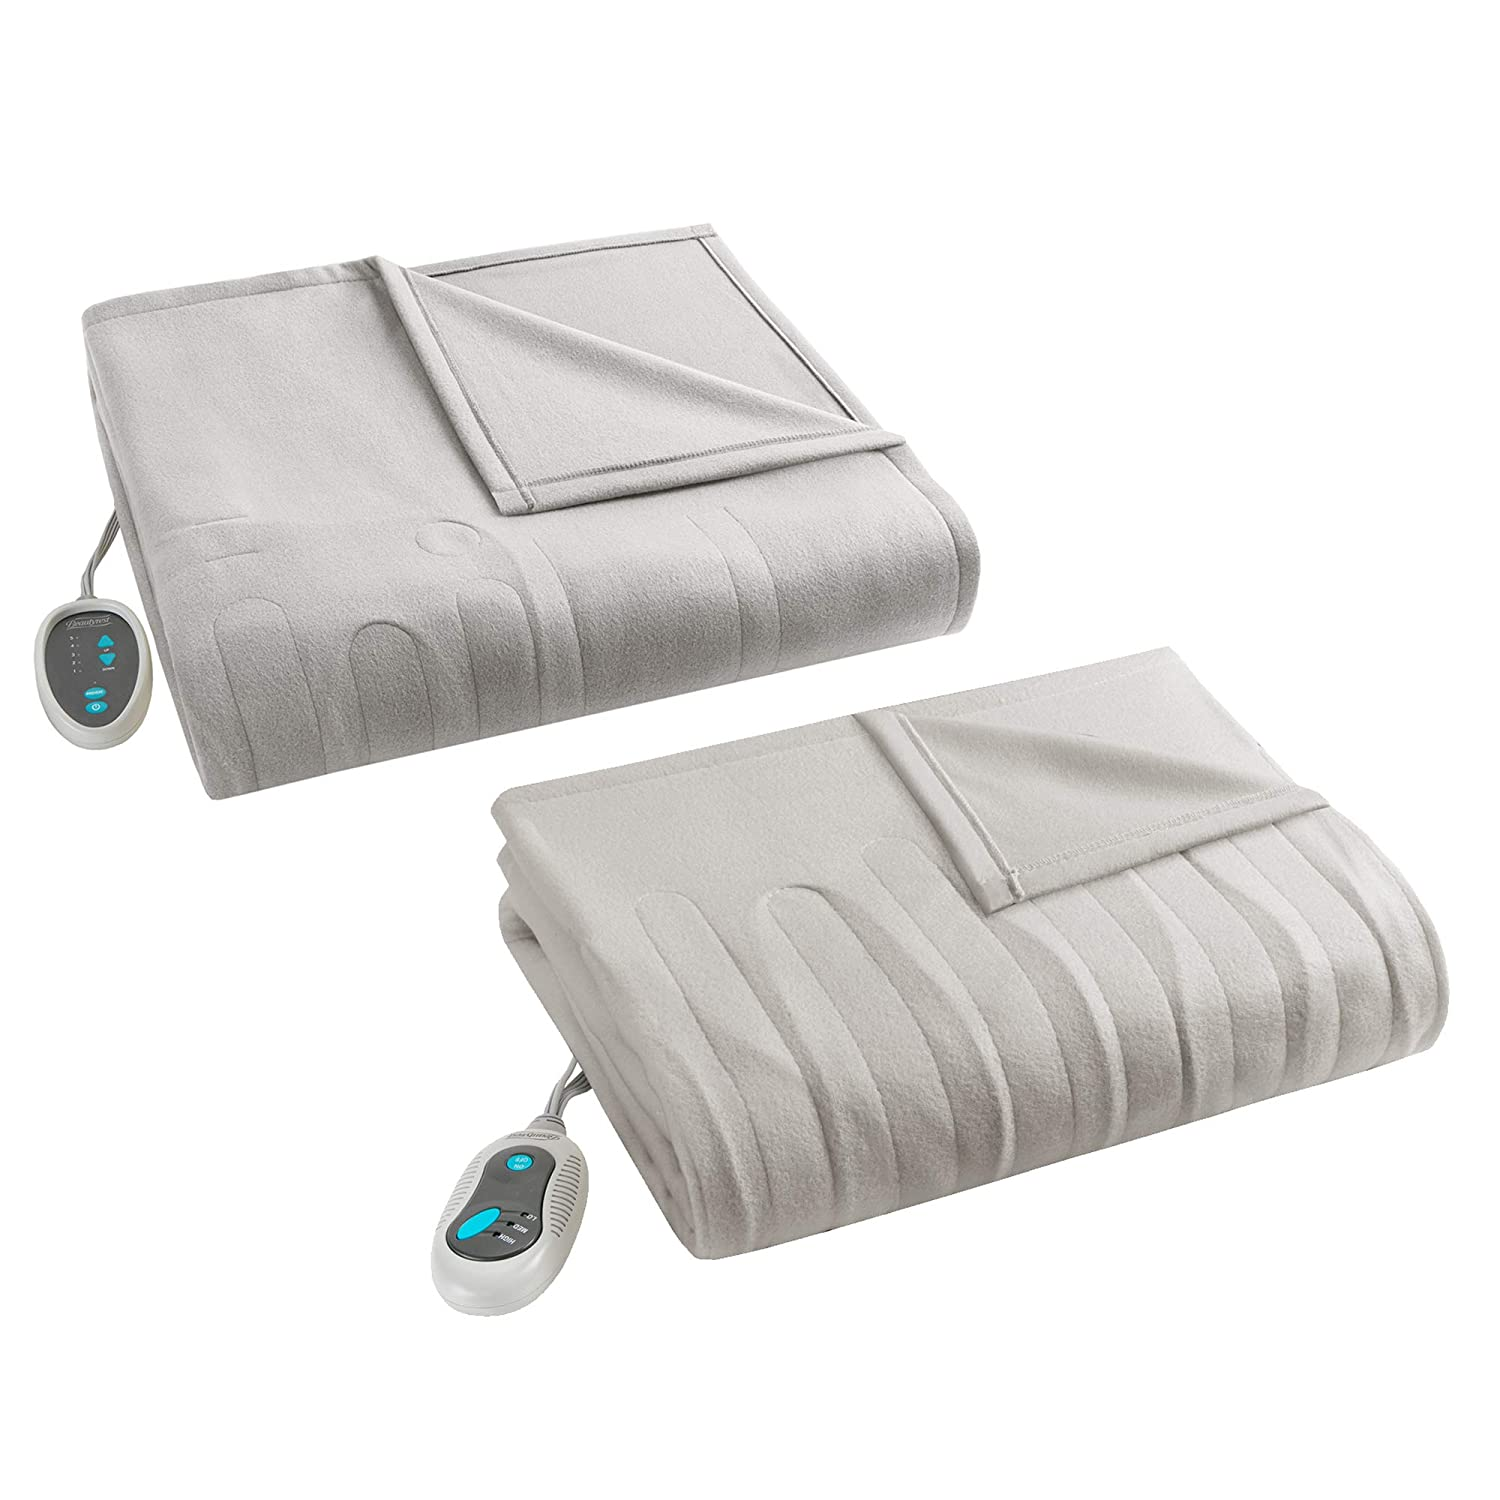 Beautyrest Fleece 2 Piece Electric Blanket Combo Ultra Warm and Soft Heated Throws Bedding Set with Auto Shutoff, Full, Tan